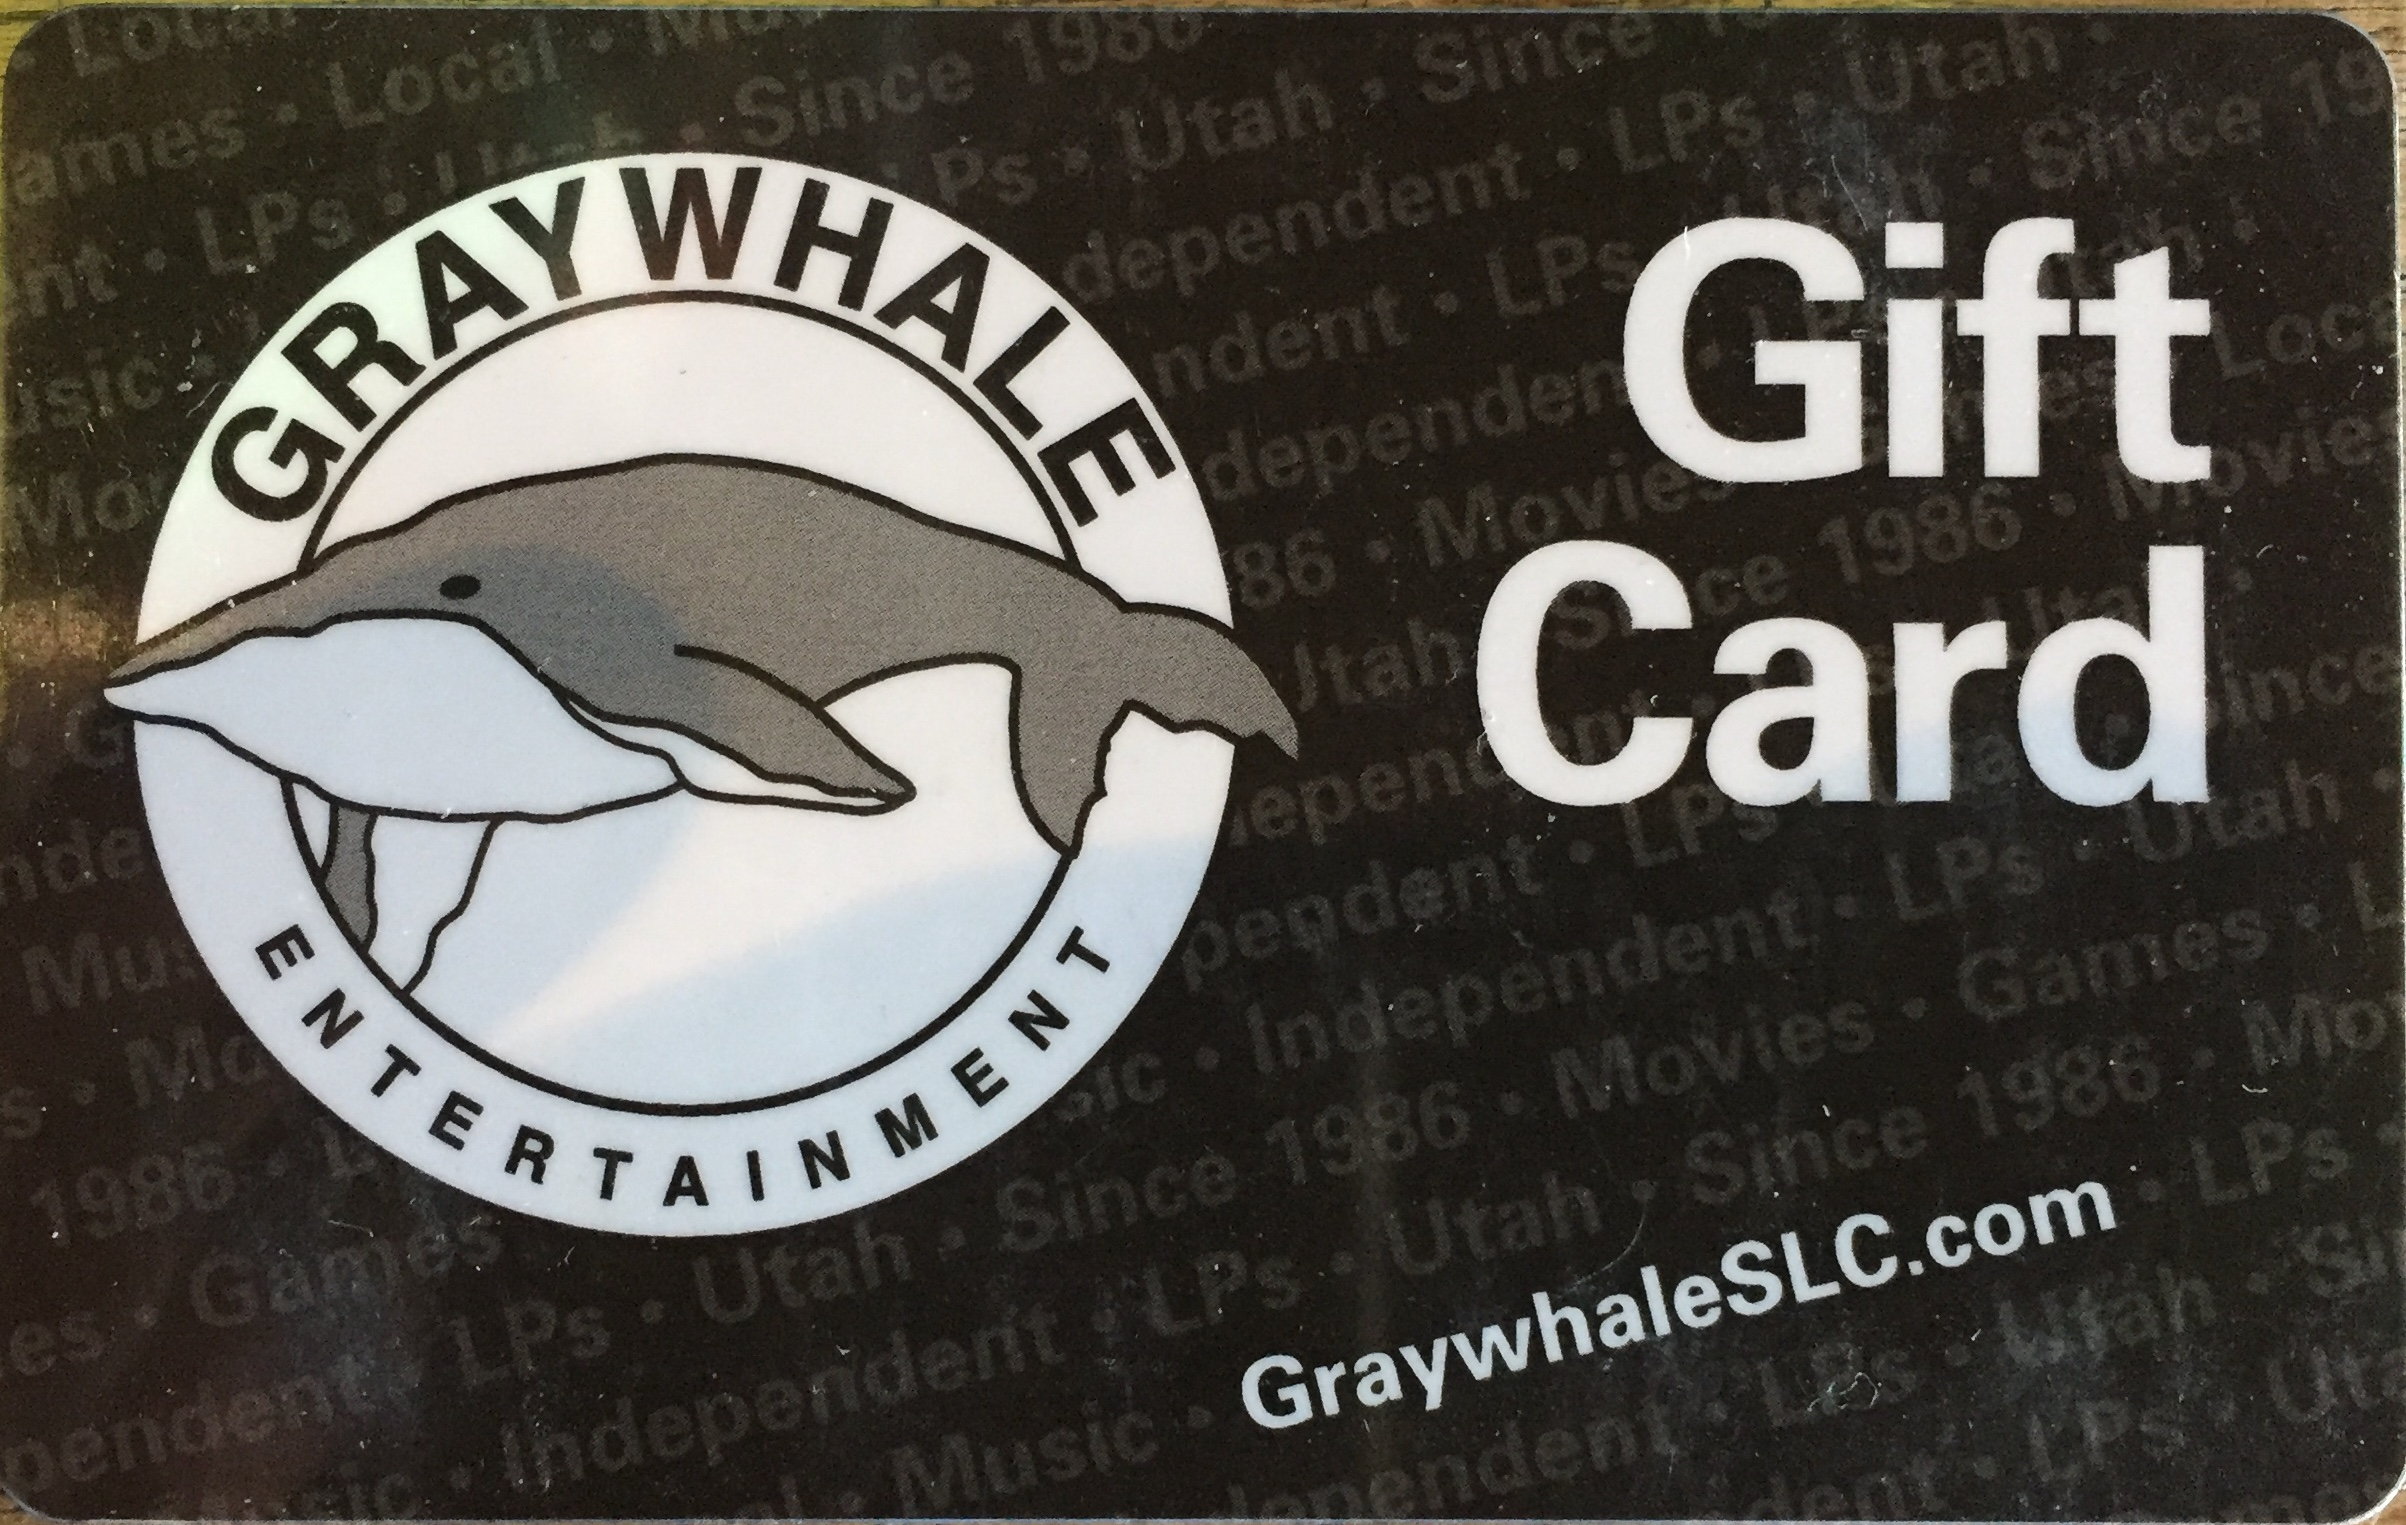 Reloadable Graywhale Giftcards In Any Amount From 1 500 Featuring 24 7 Support And Online Balance Inquiry Are Available Also Coming Soon